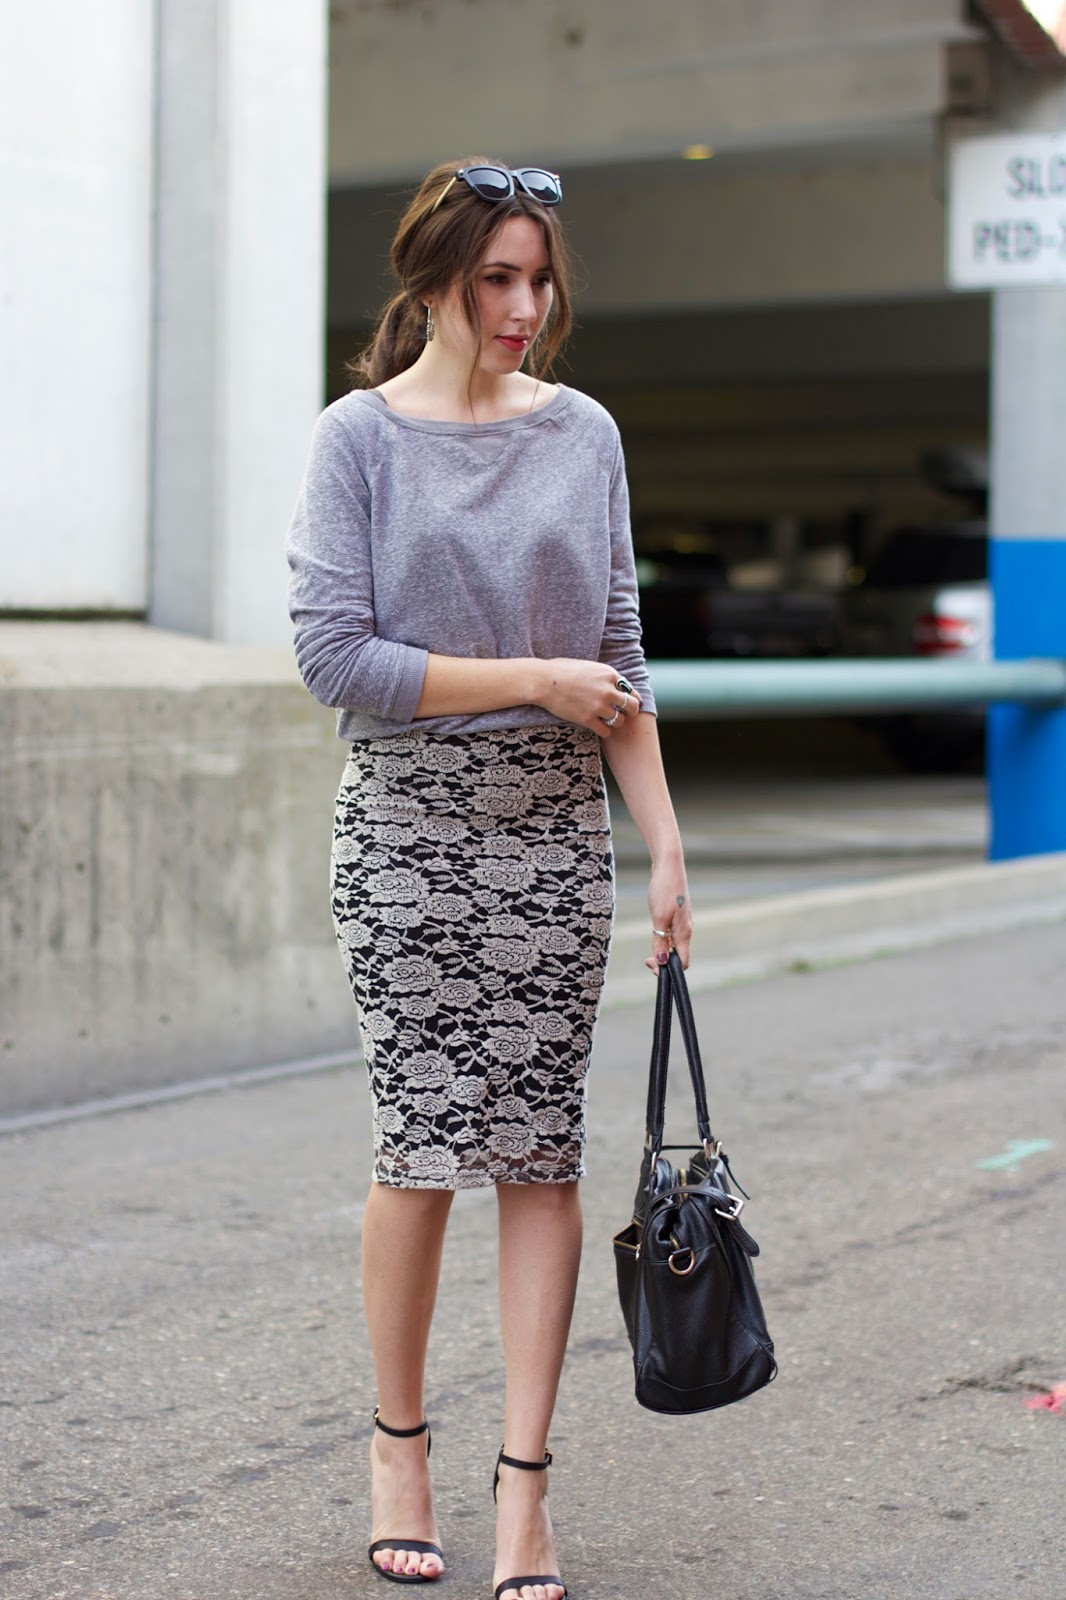 LACE SKIRT | Elements of Ellis